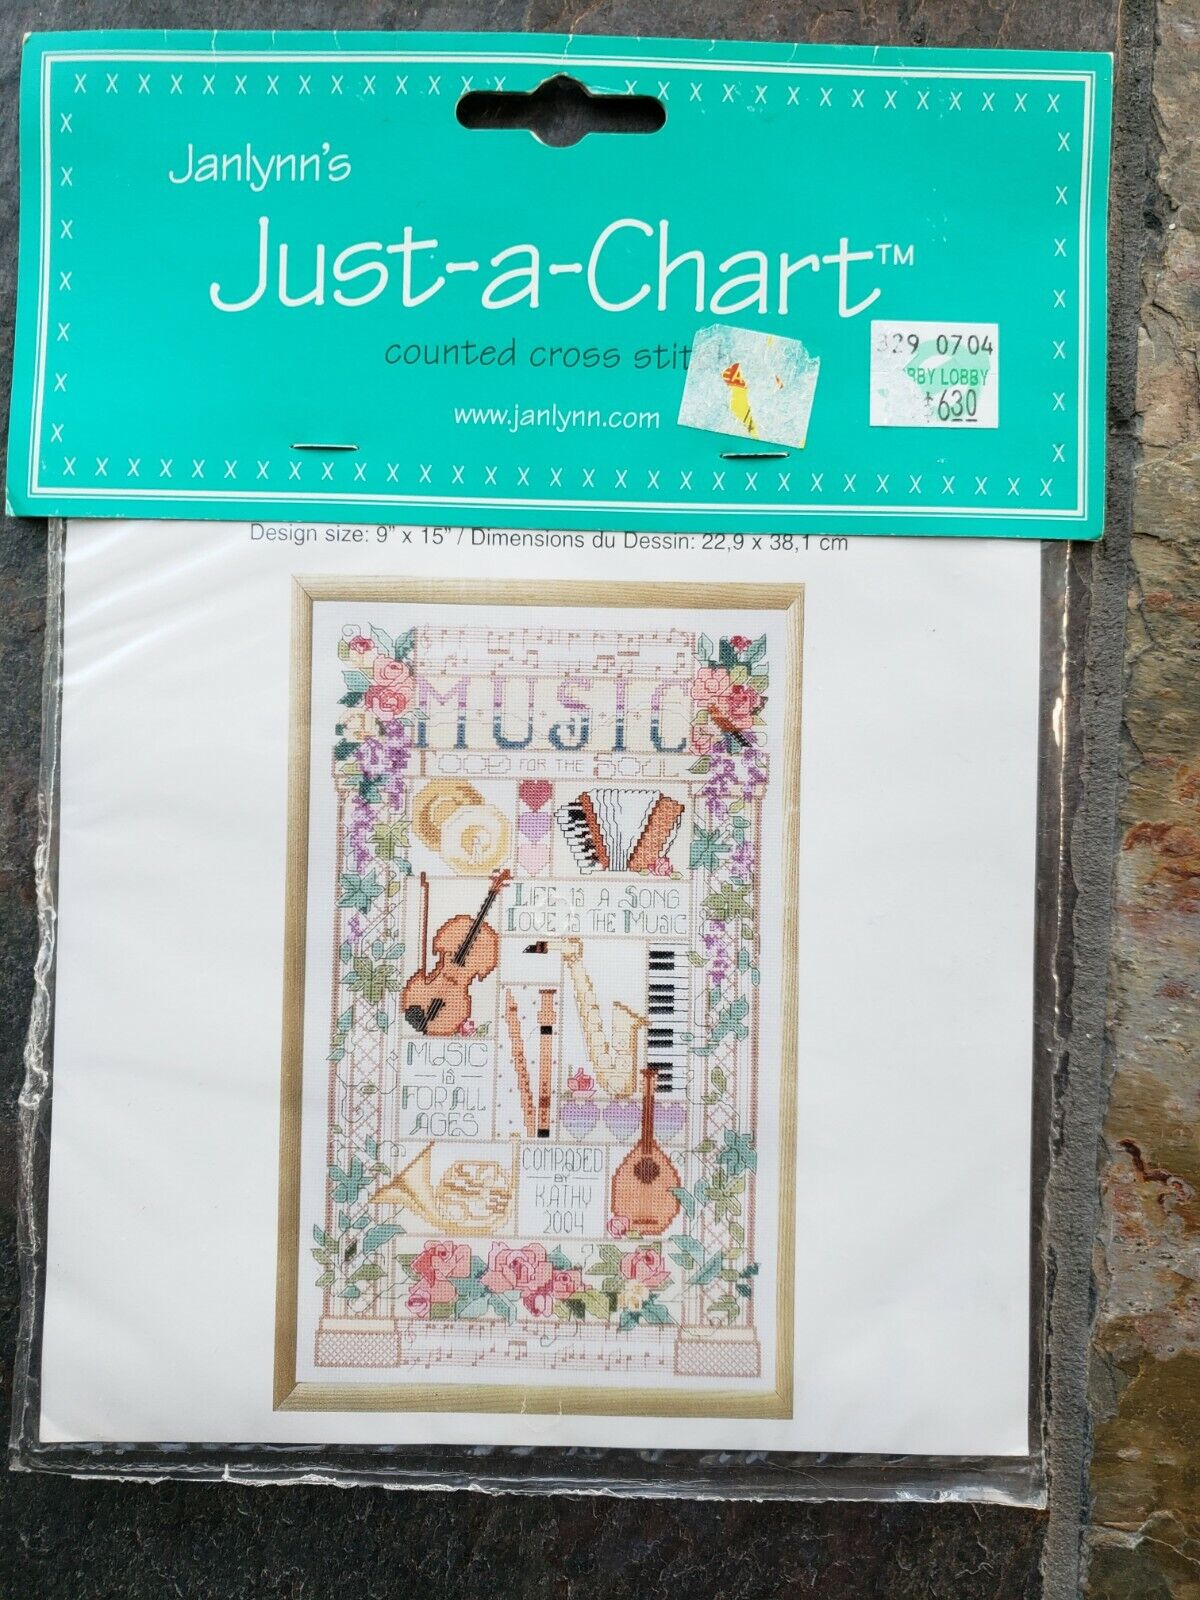 Janlynn s Cross Stitch Just A Chart 023-0191 9 X 15 CELEBRATION OF MUSIC - $8.99